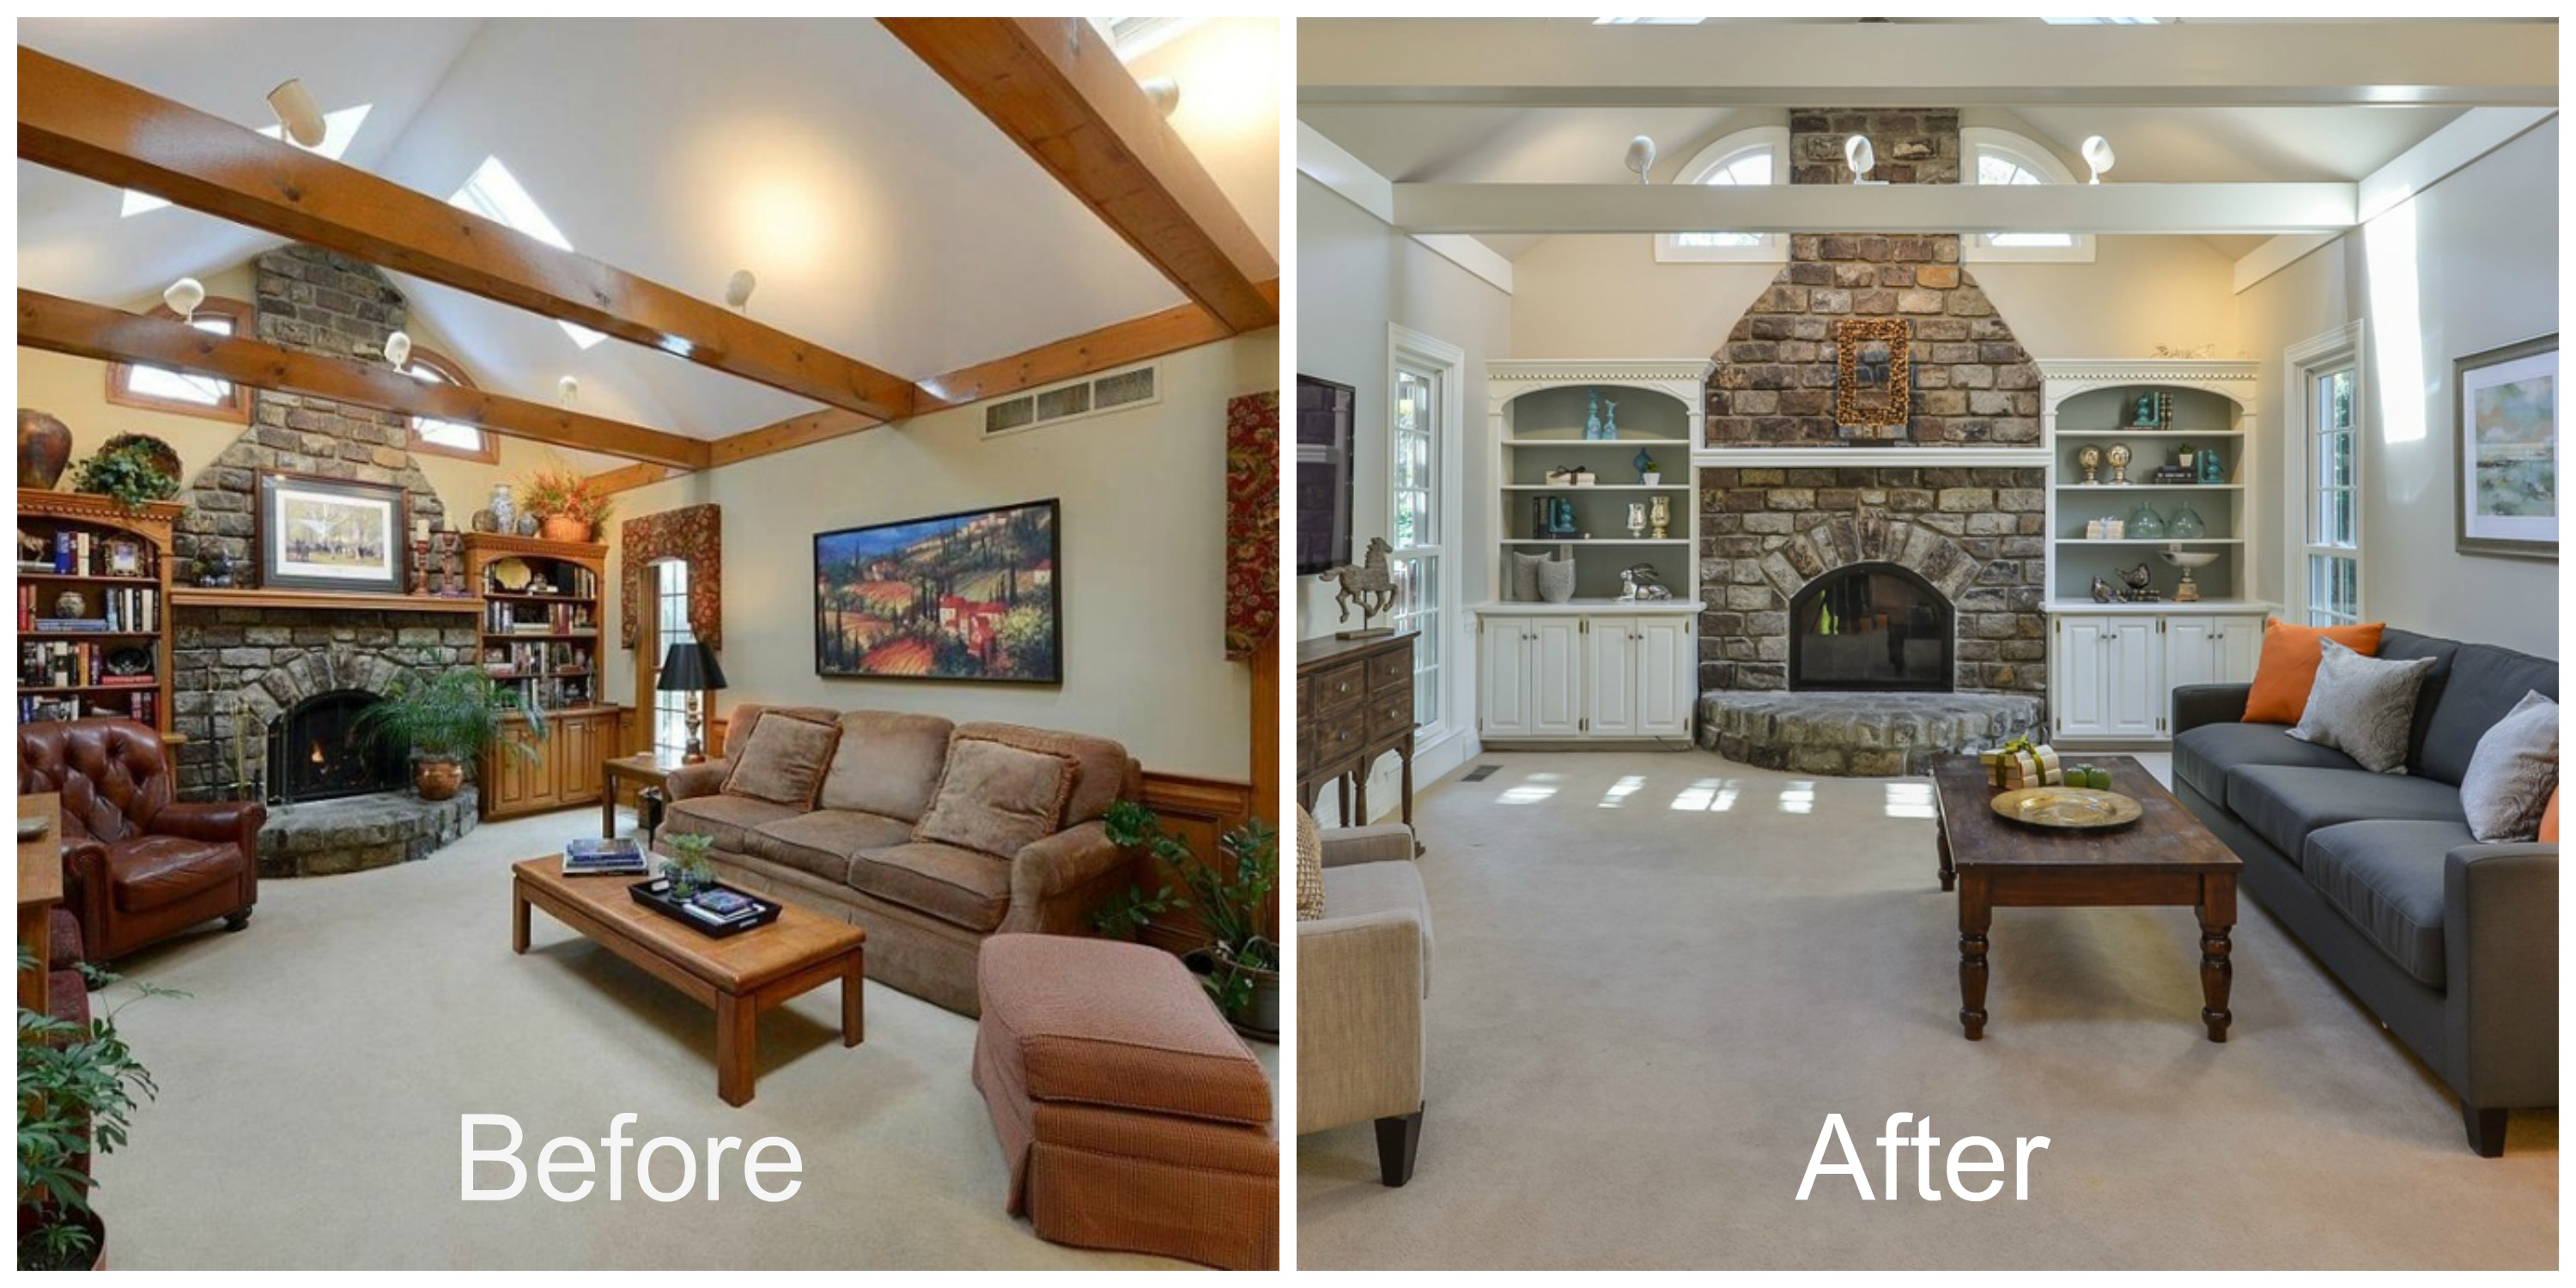 Interior design and home staging - Home Staging Before And After